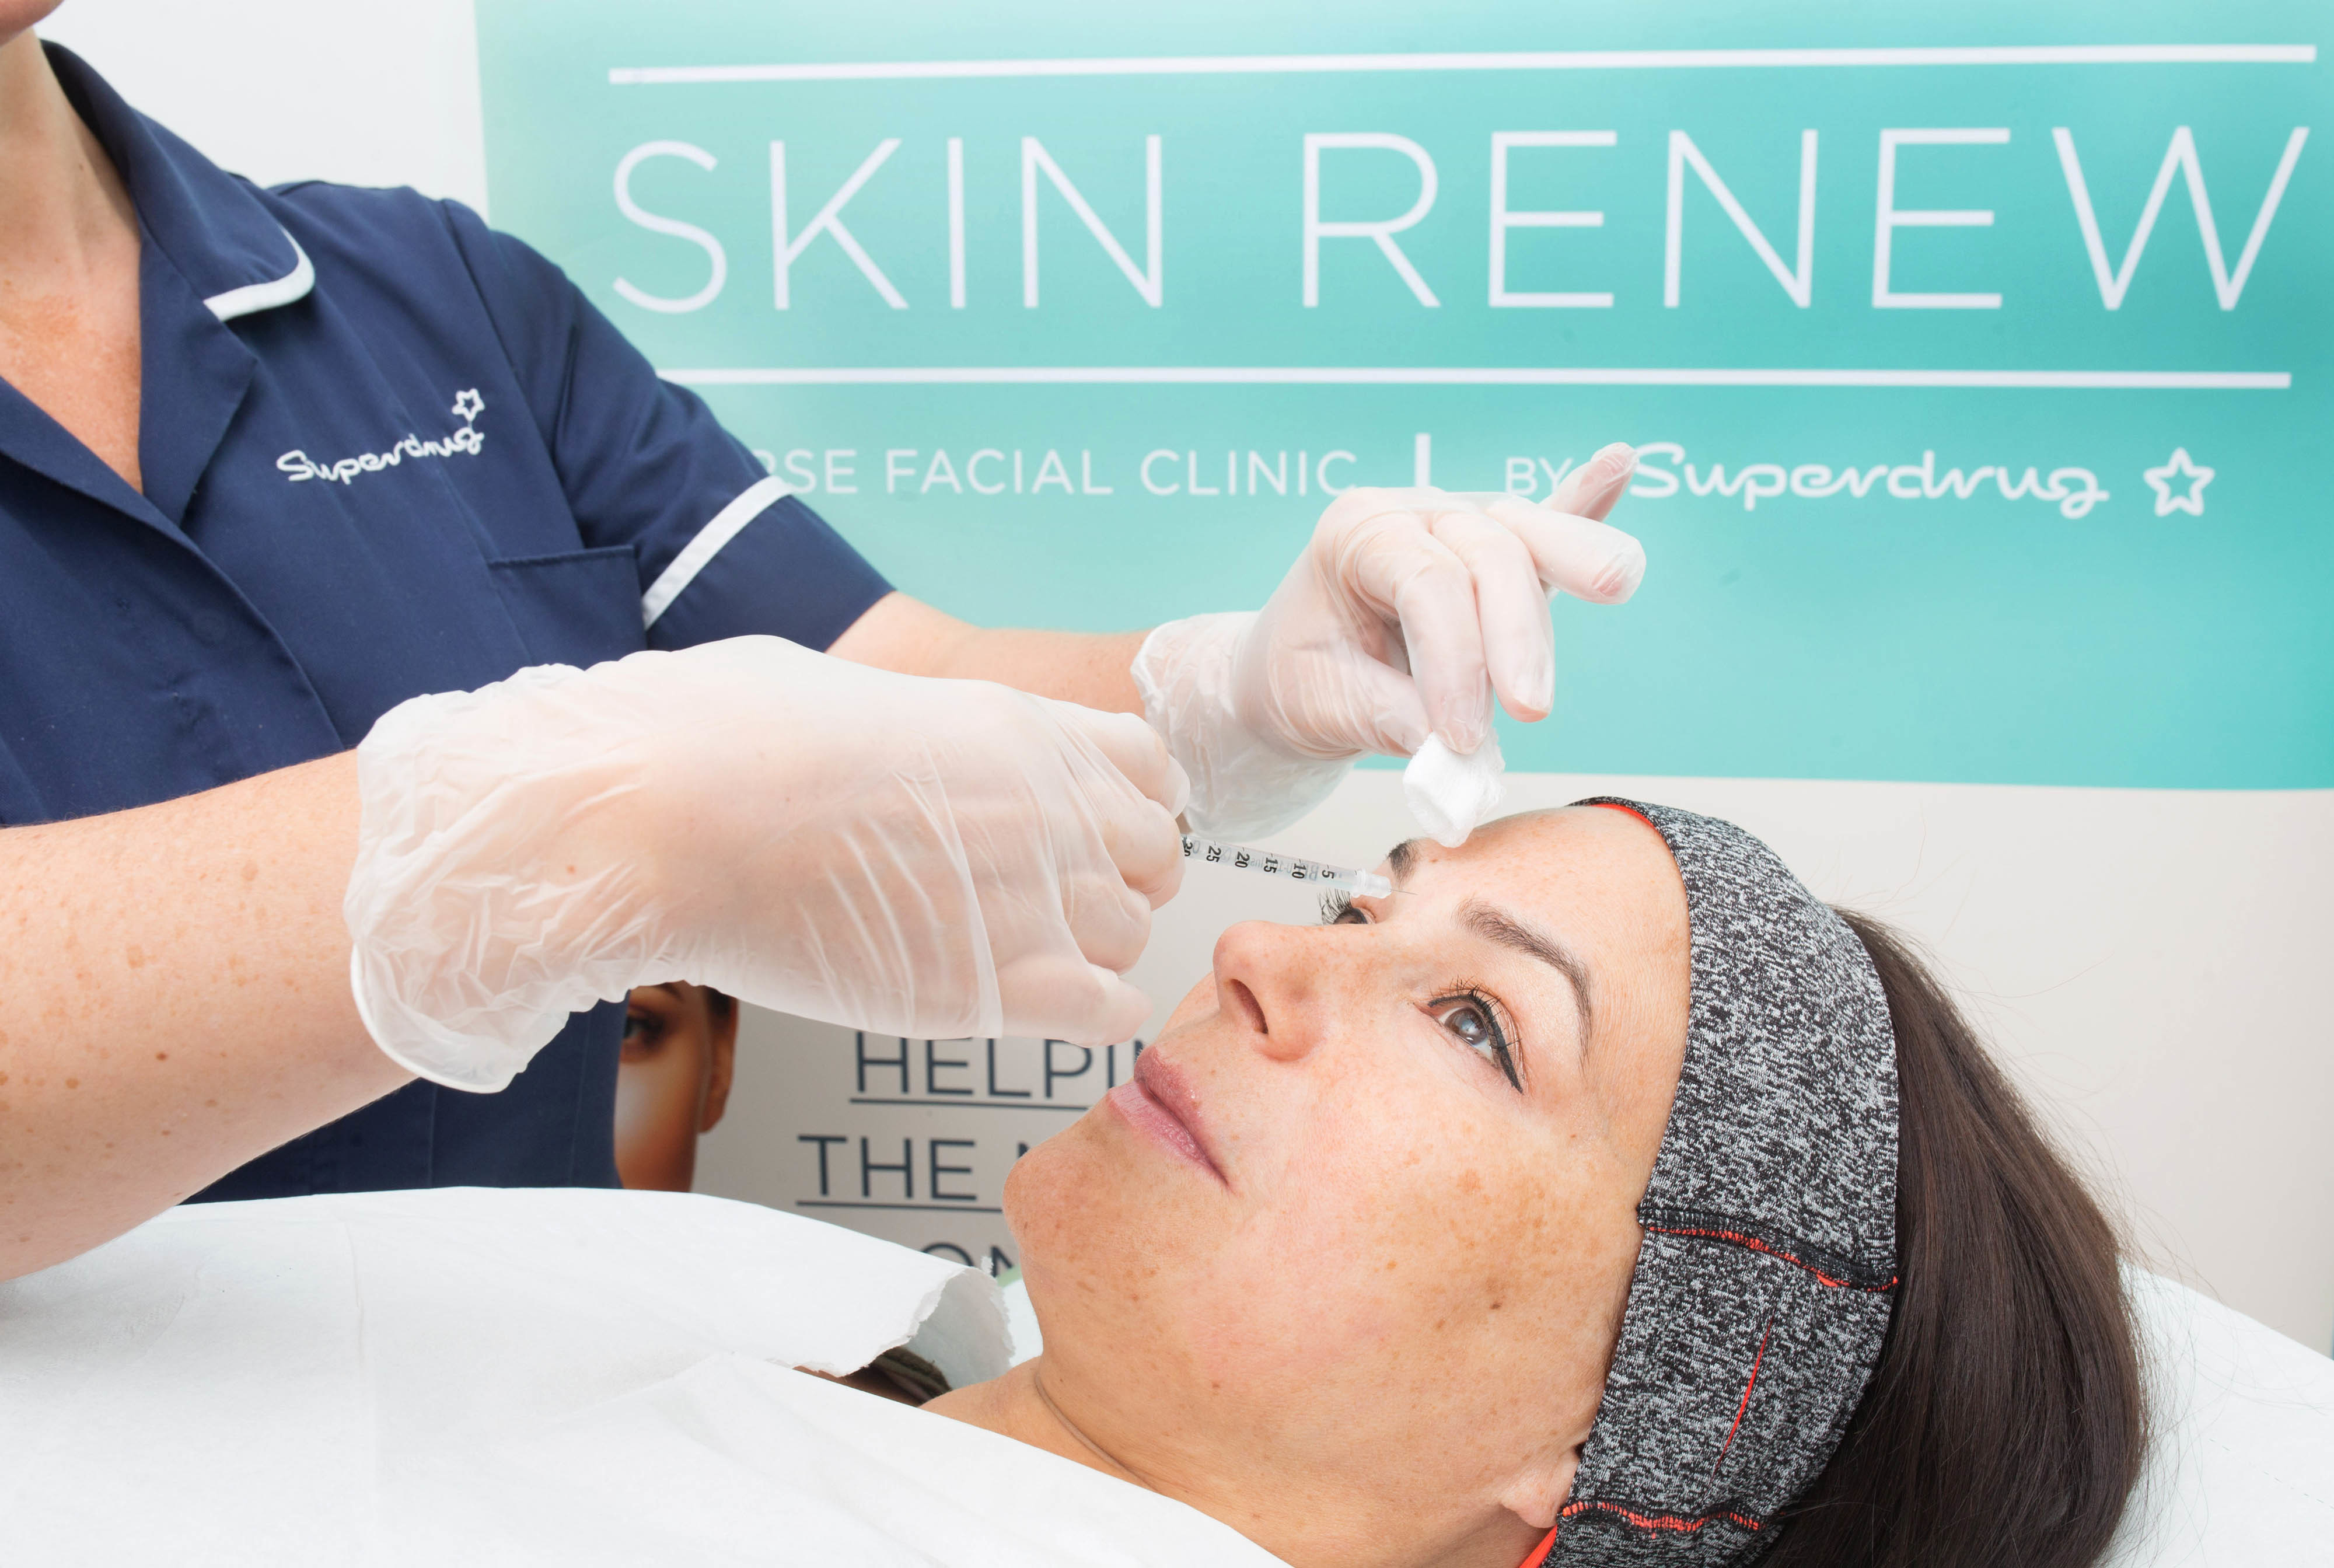 Lisa from London receives a treatment following a consultation with Superdrug nurse Rosie, as the high street retailer launches its Skin Renew Service, which will include anti-wrinkle and skin rejuvenation aesthetic treatments such as BOTOX and Juvederm dermal fillers